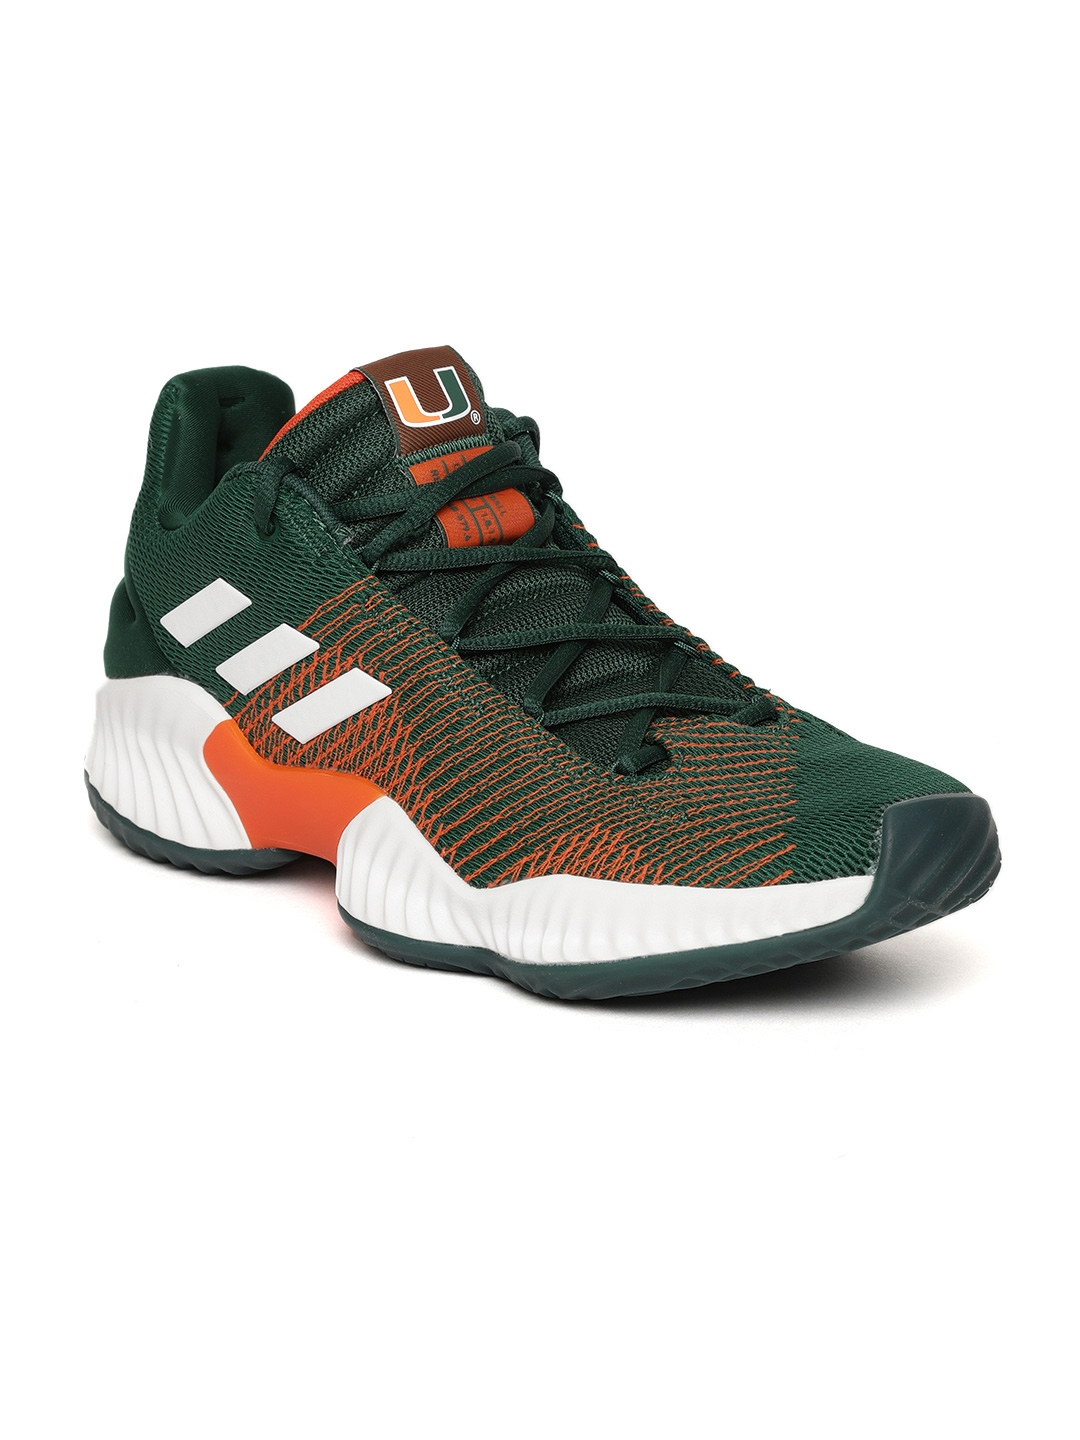 low priced 4152f 45f1b ADIDAS Men Green Basketball Shoes